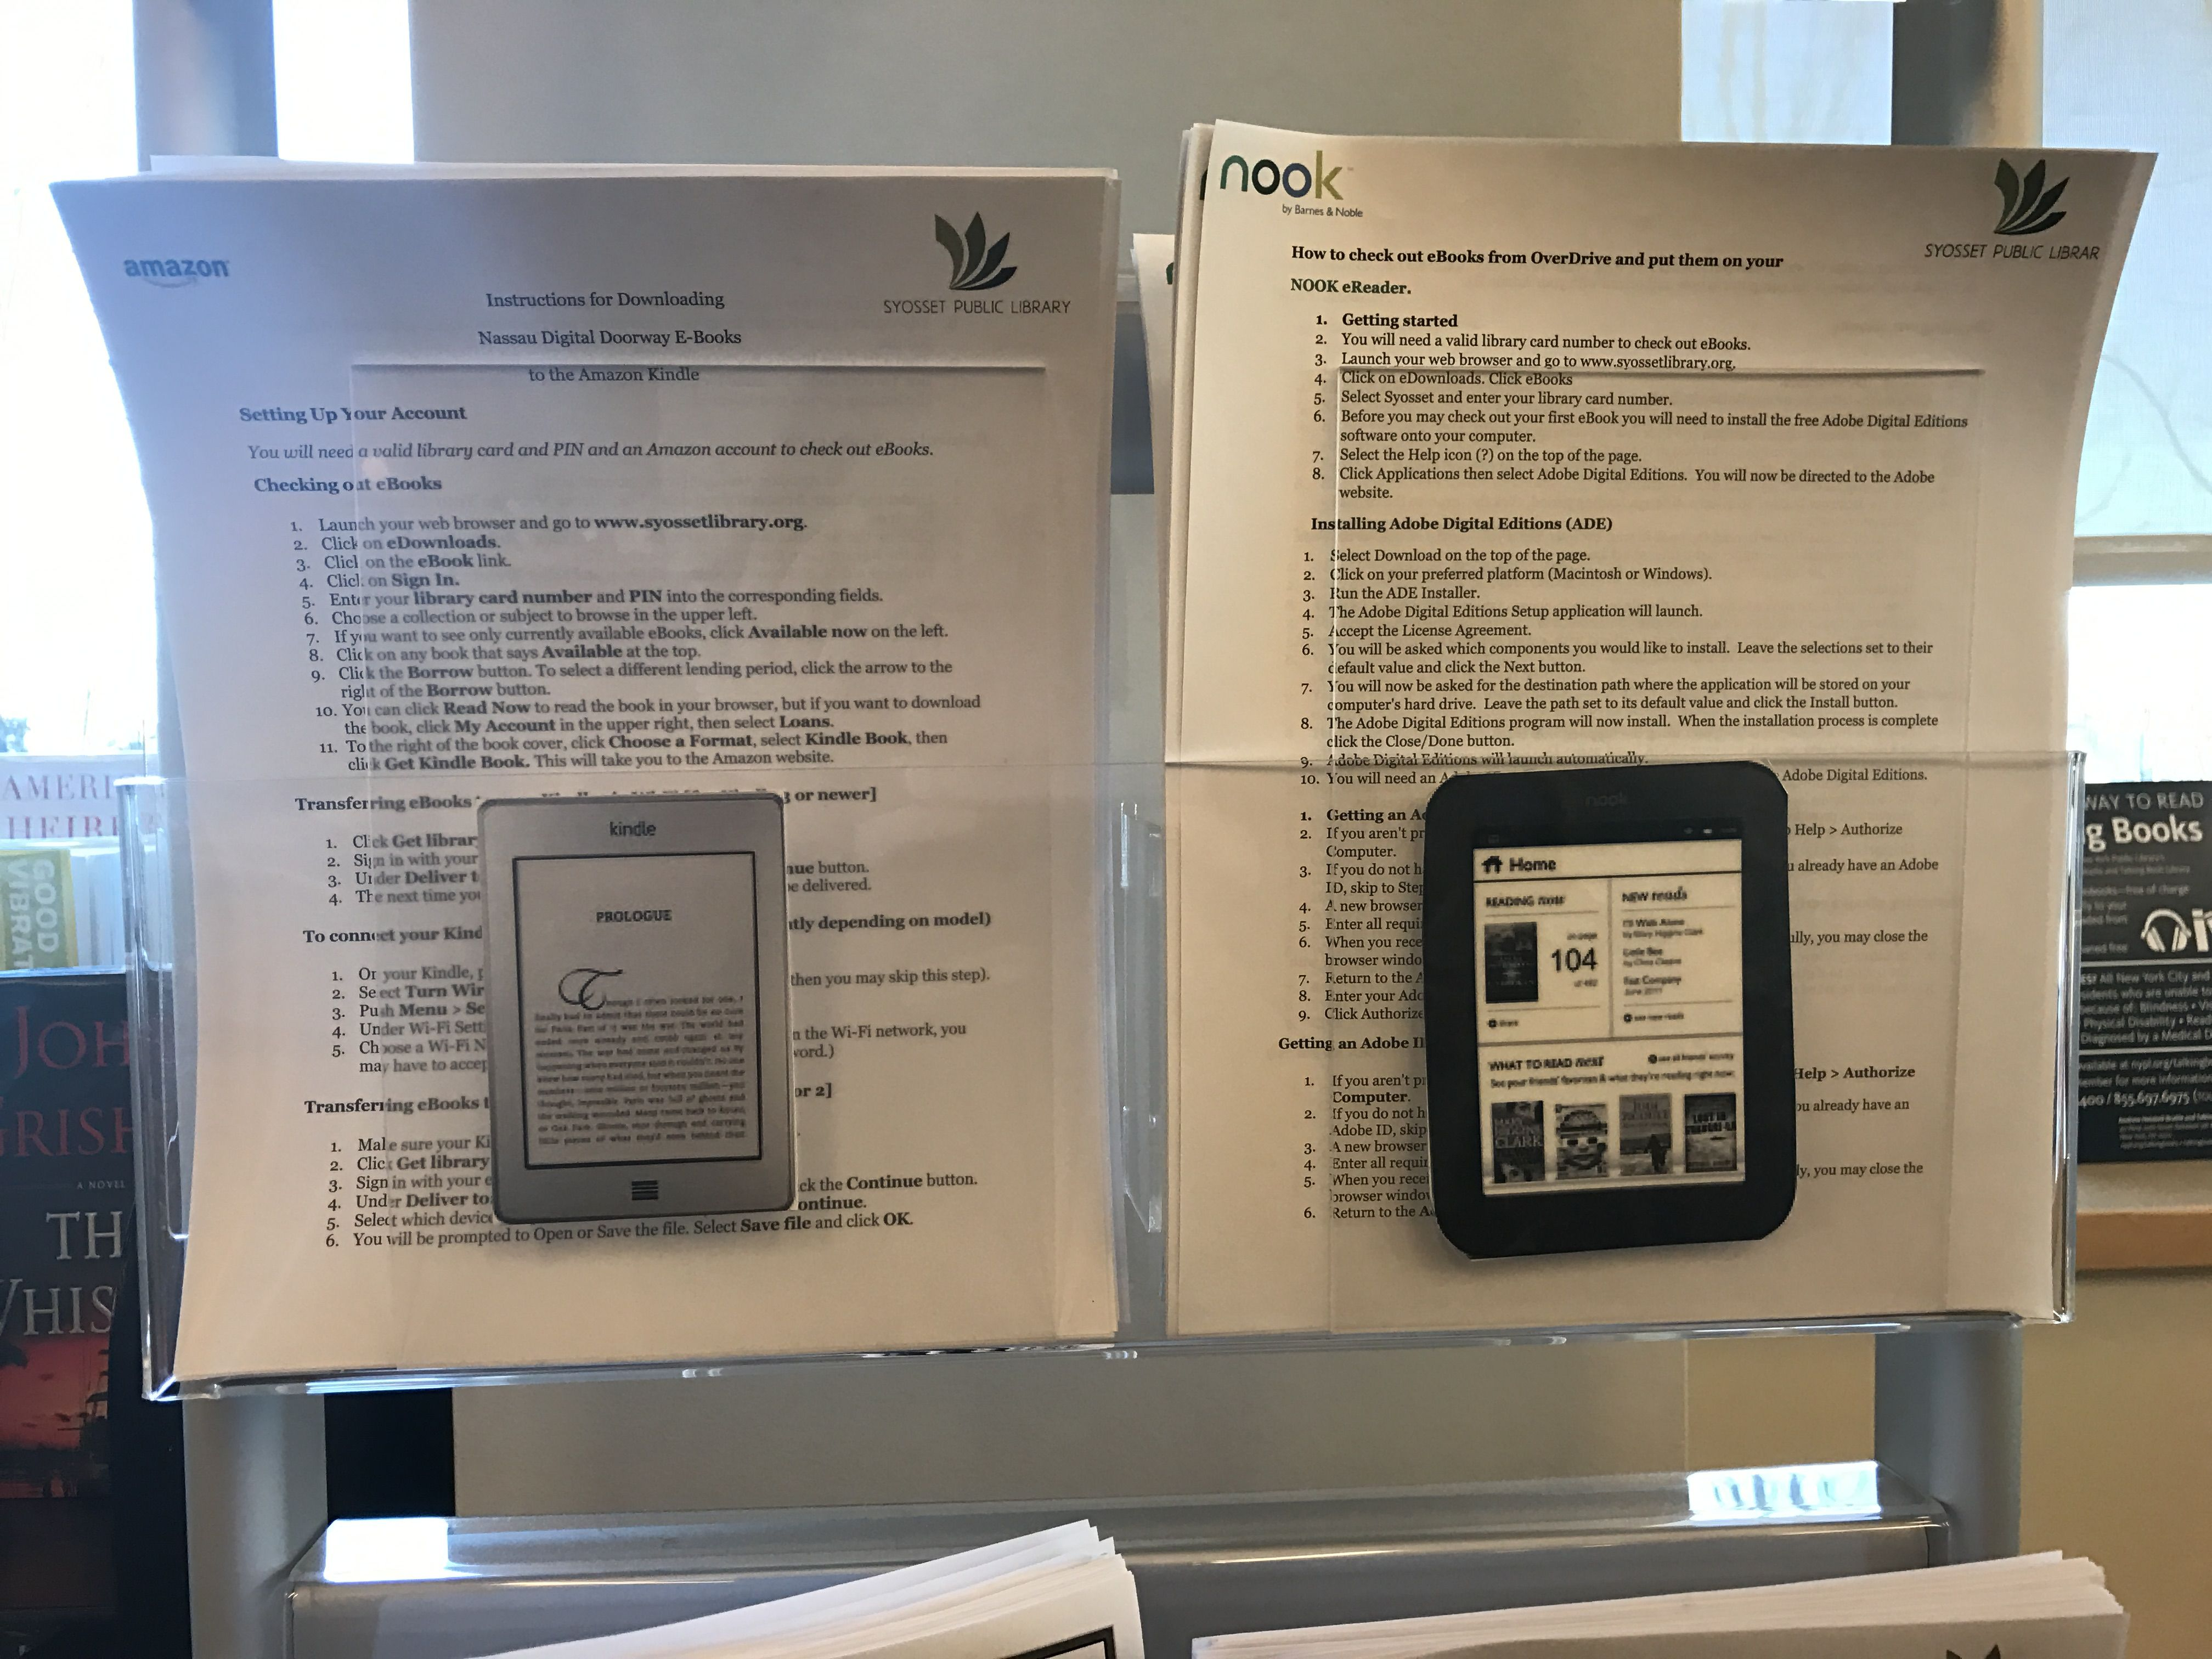 Our Amazon Kindle (paper white) and Nook (glow light